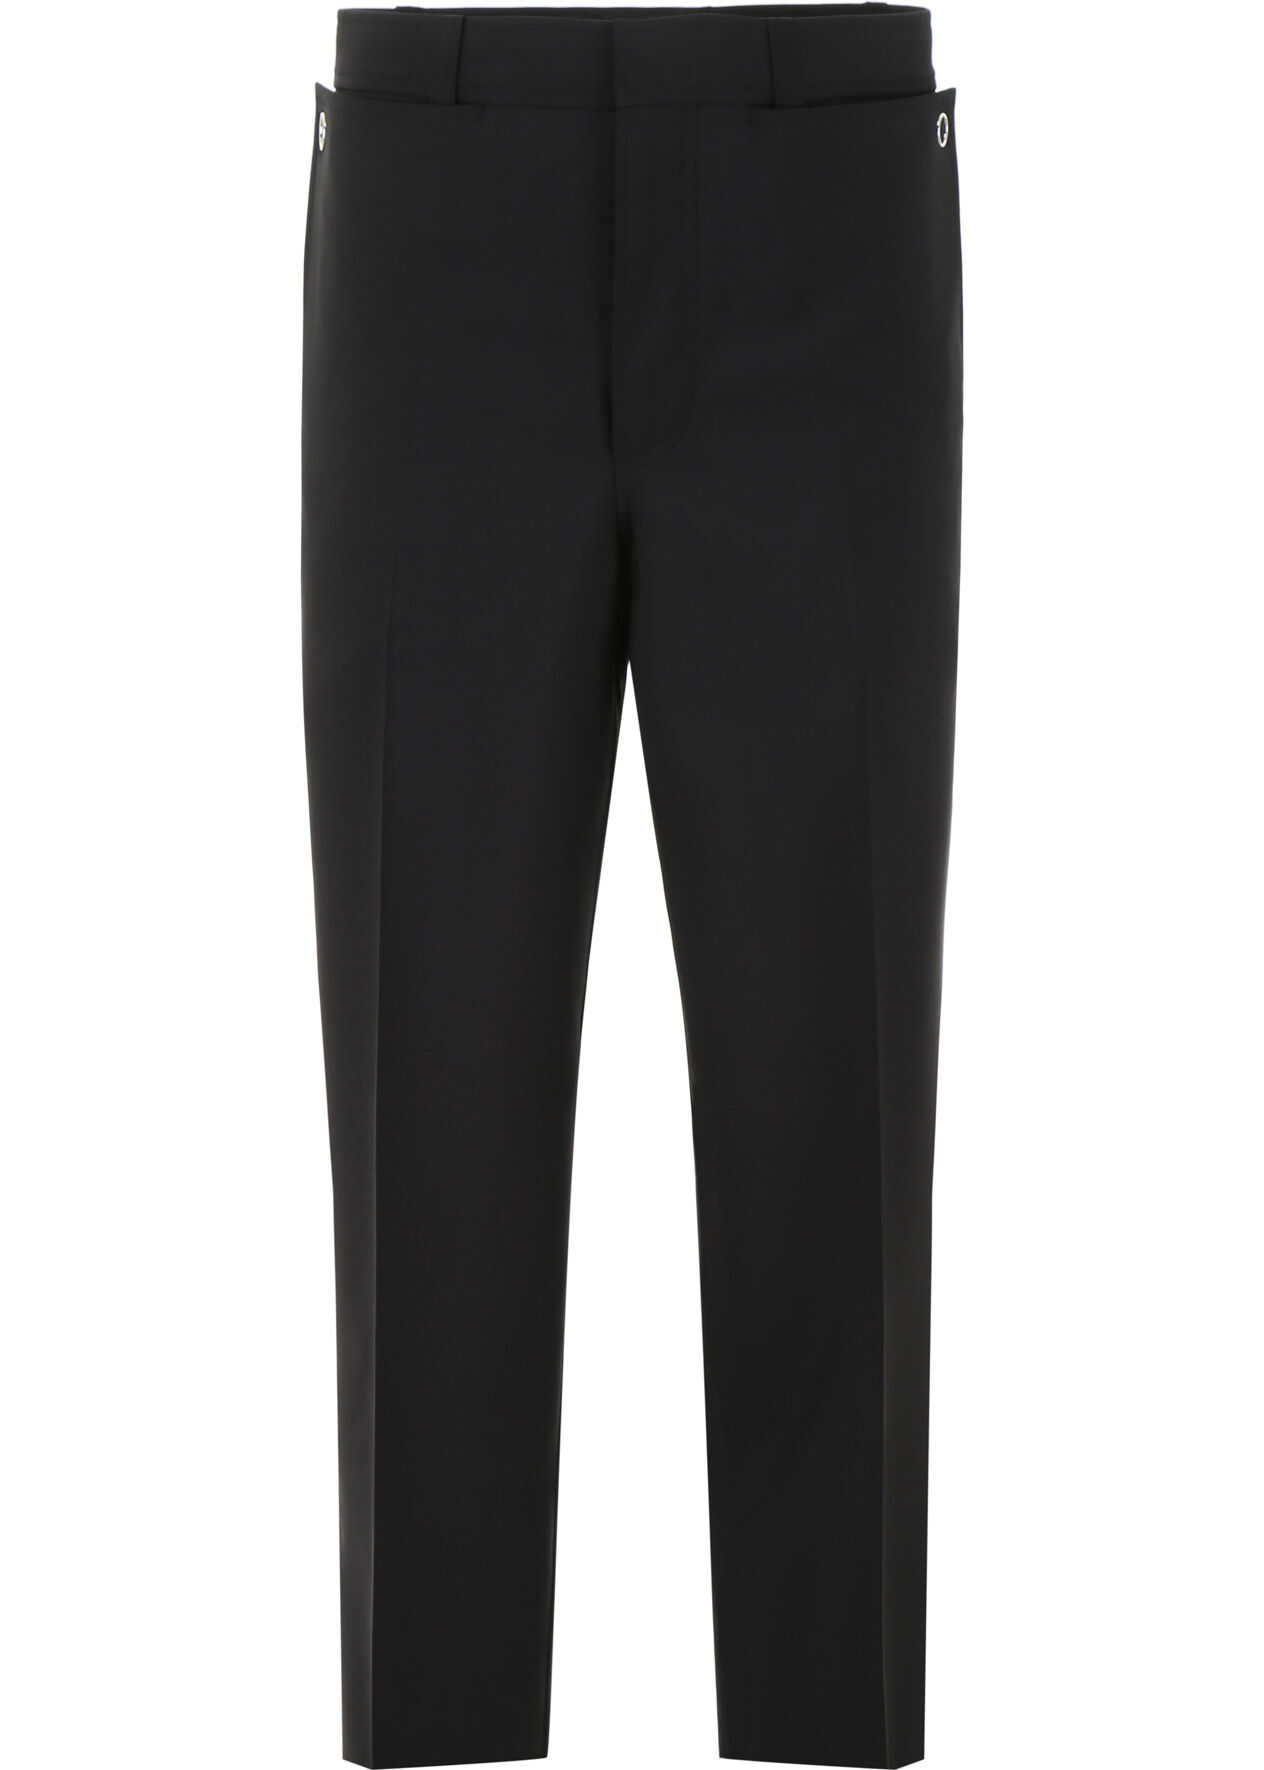 Burberry Wool And Mohair Trousers BLACK